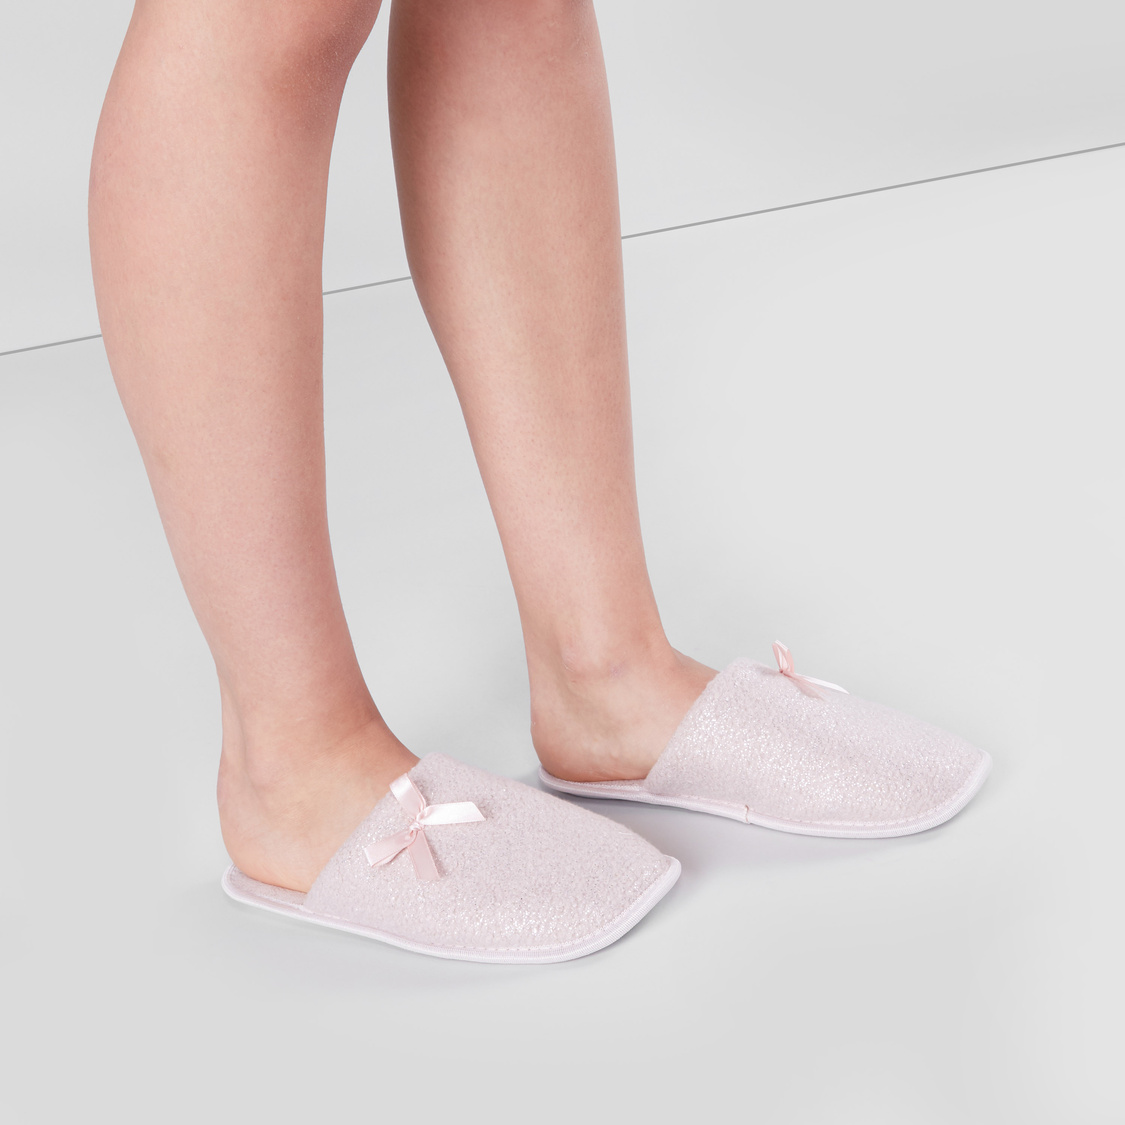 Embellished Bedroom Slippers with Bow Applique Detail